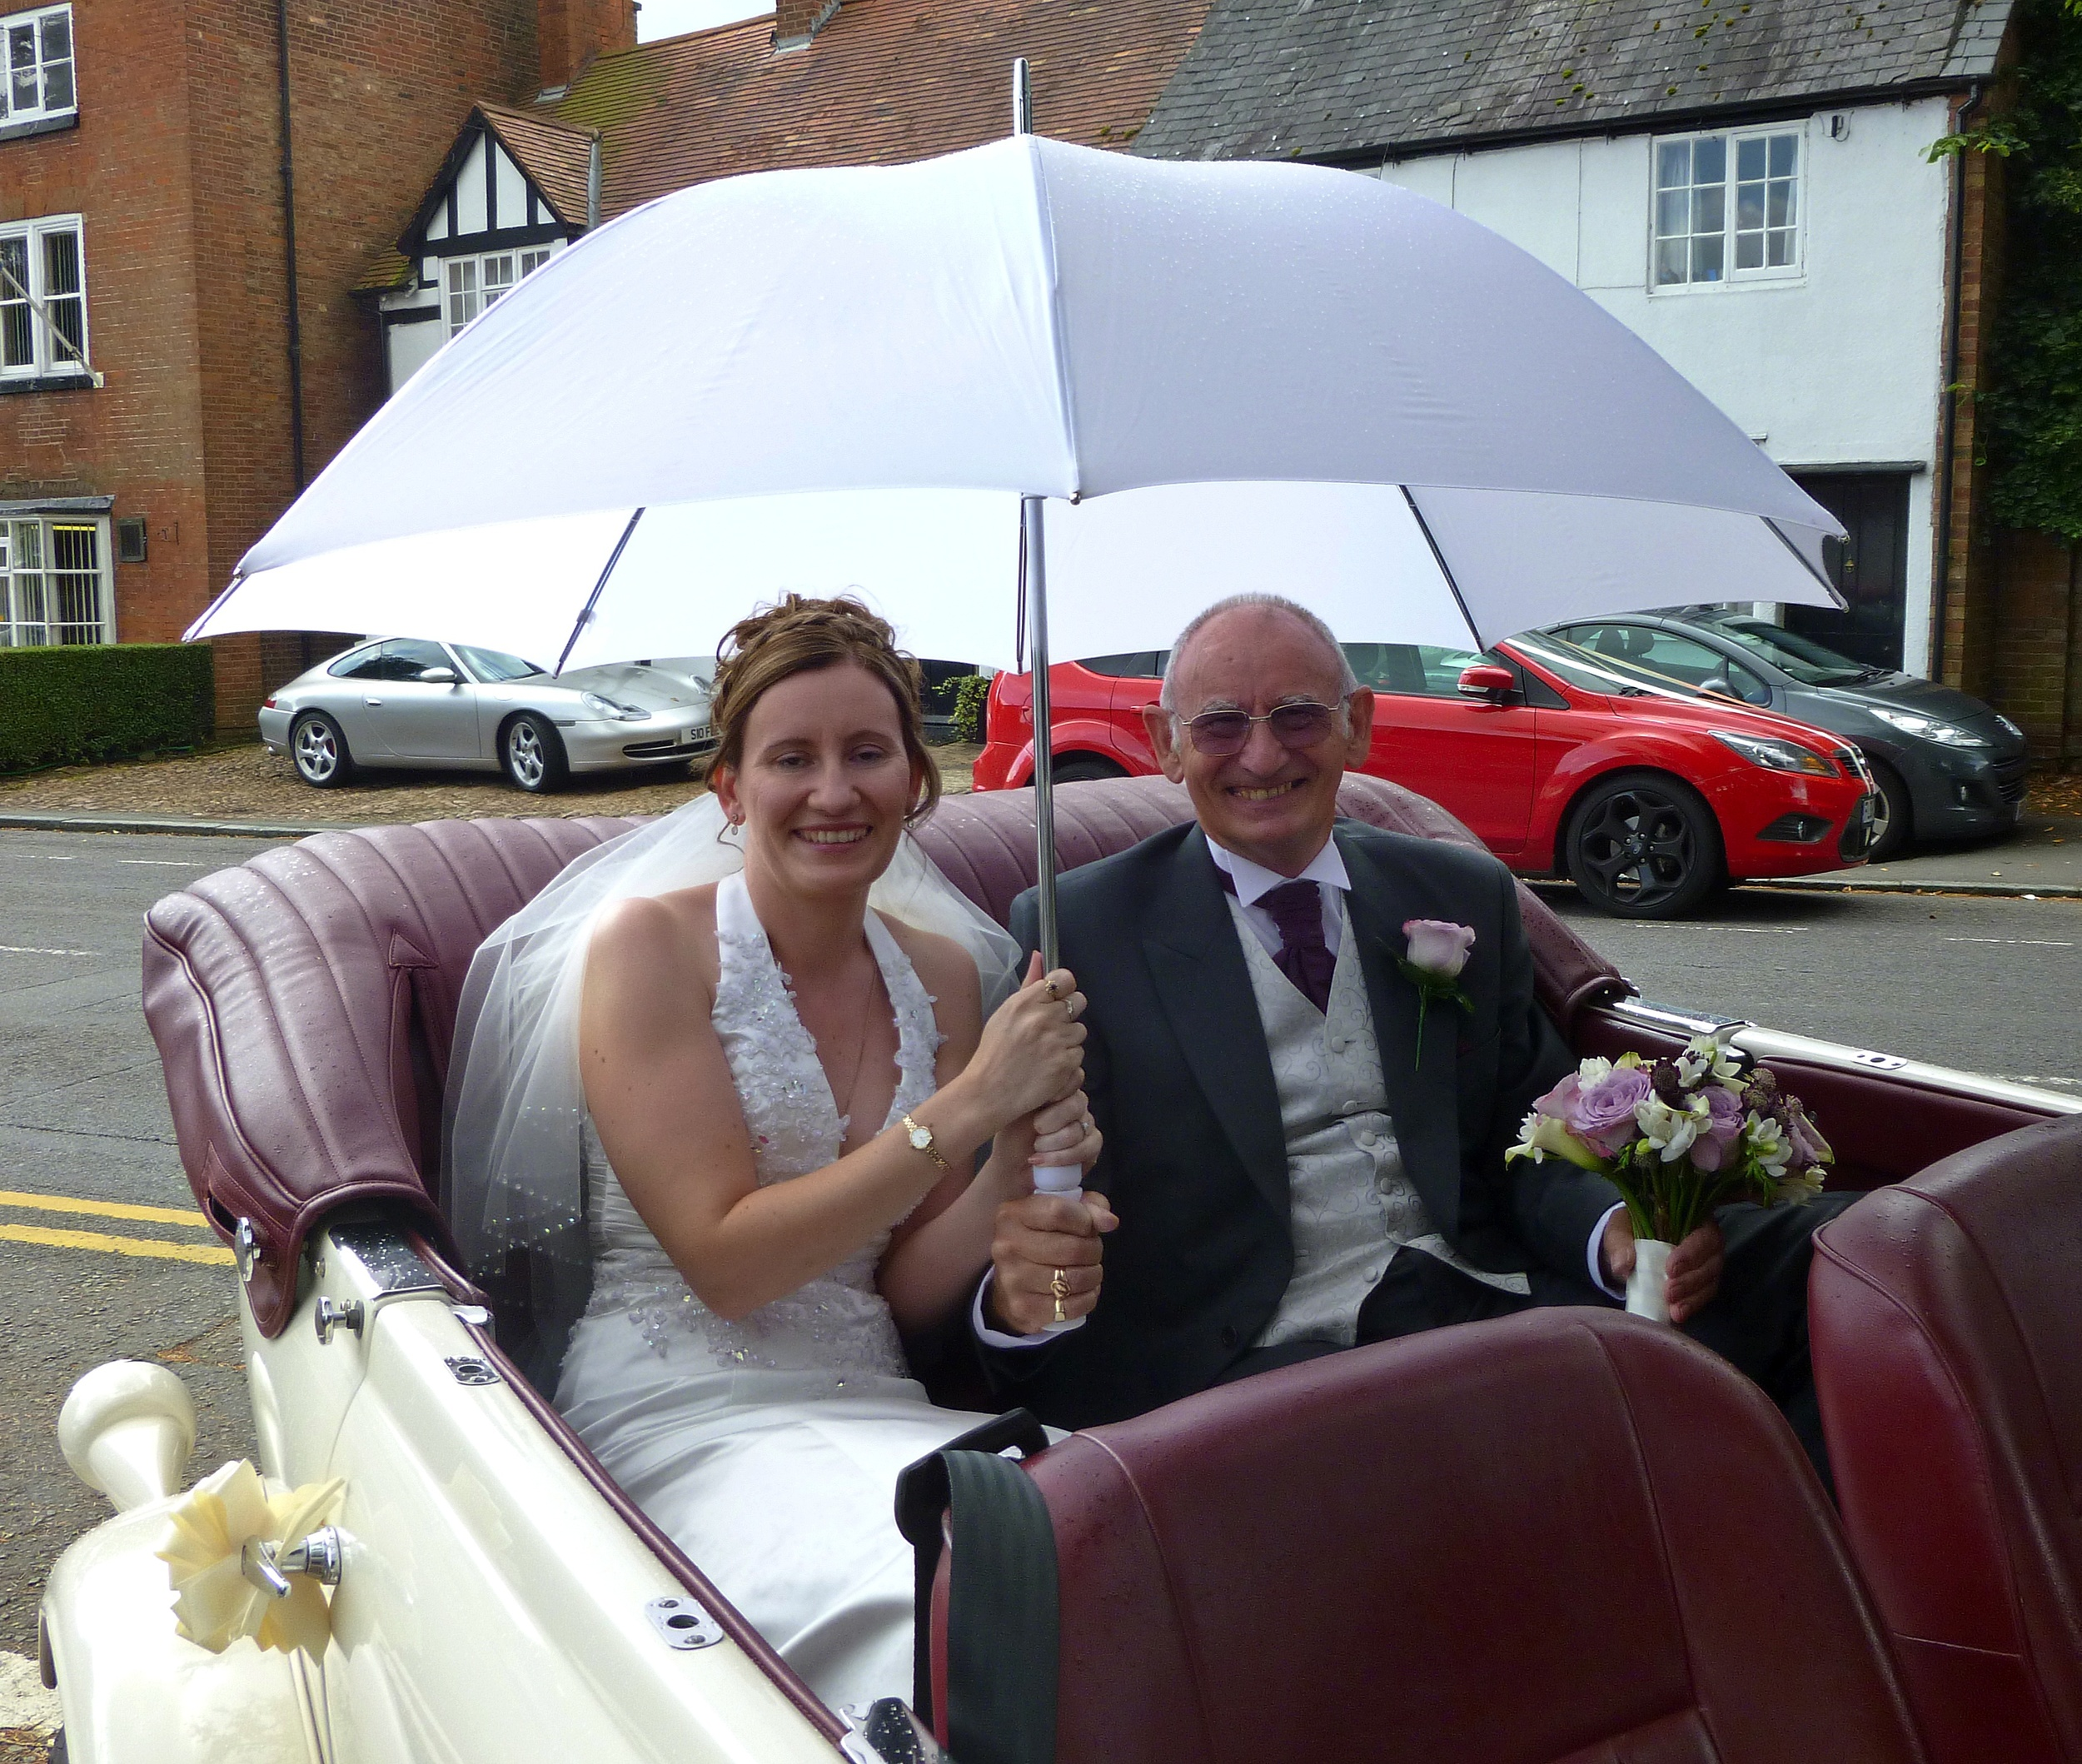 """Sharon and Father enjoying the umbrella """"fun"""" on arrival at St. Catherine's Church, Burbage for Sharon's marriage to Mark."""